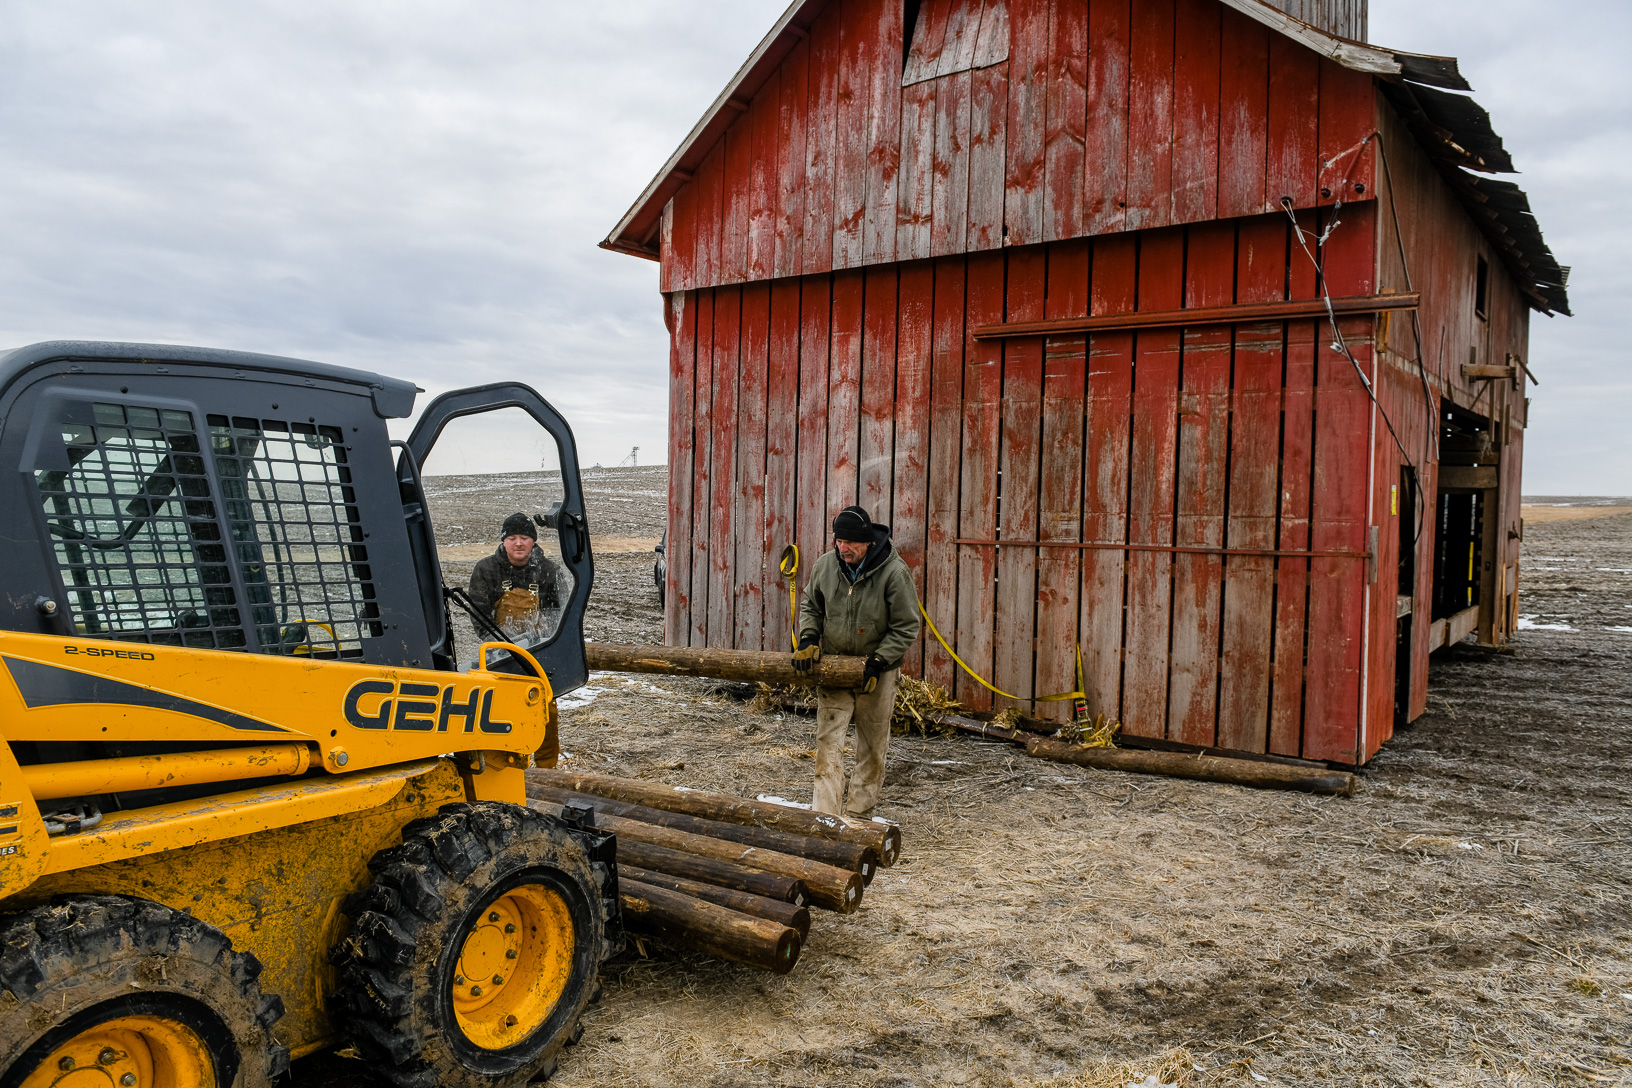 The crew used wooden logs and a steel frame to move the barn across the ground. Stopping often to collect the rollers and place them in the front to start the process over.